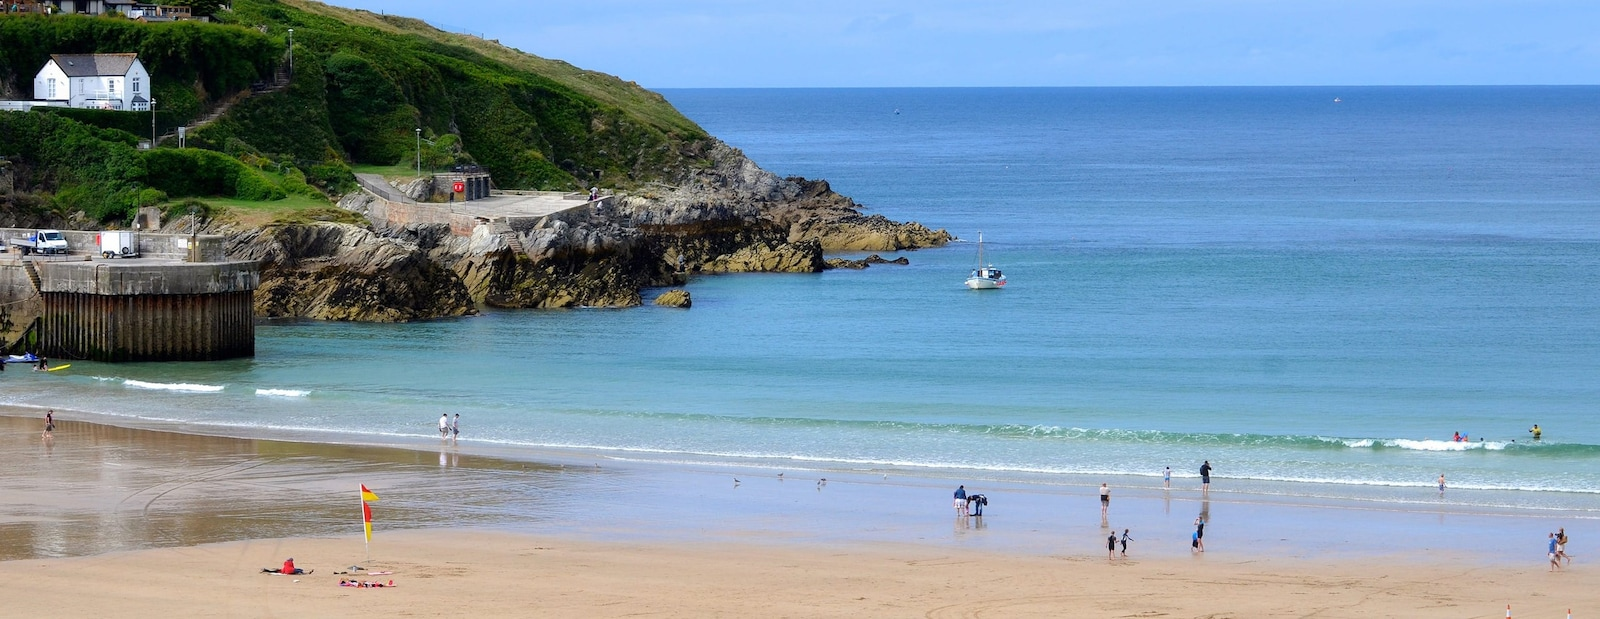 Vacation rentals in Port Gaverne